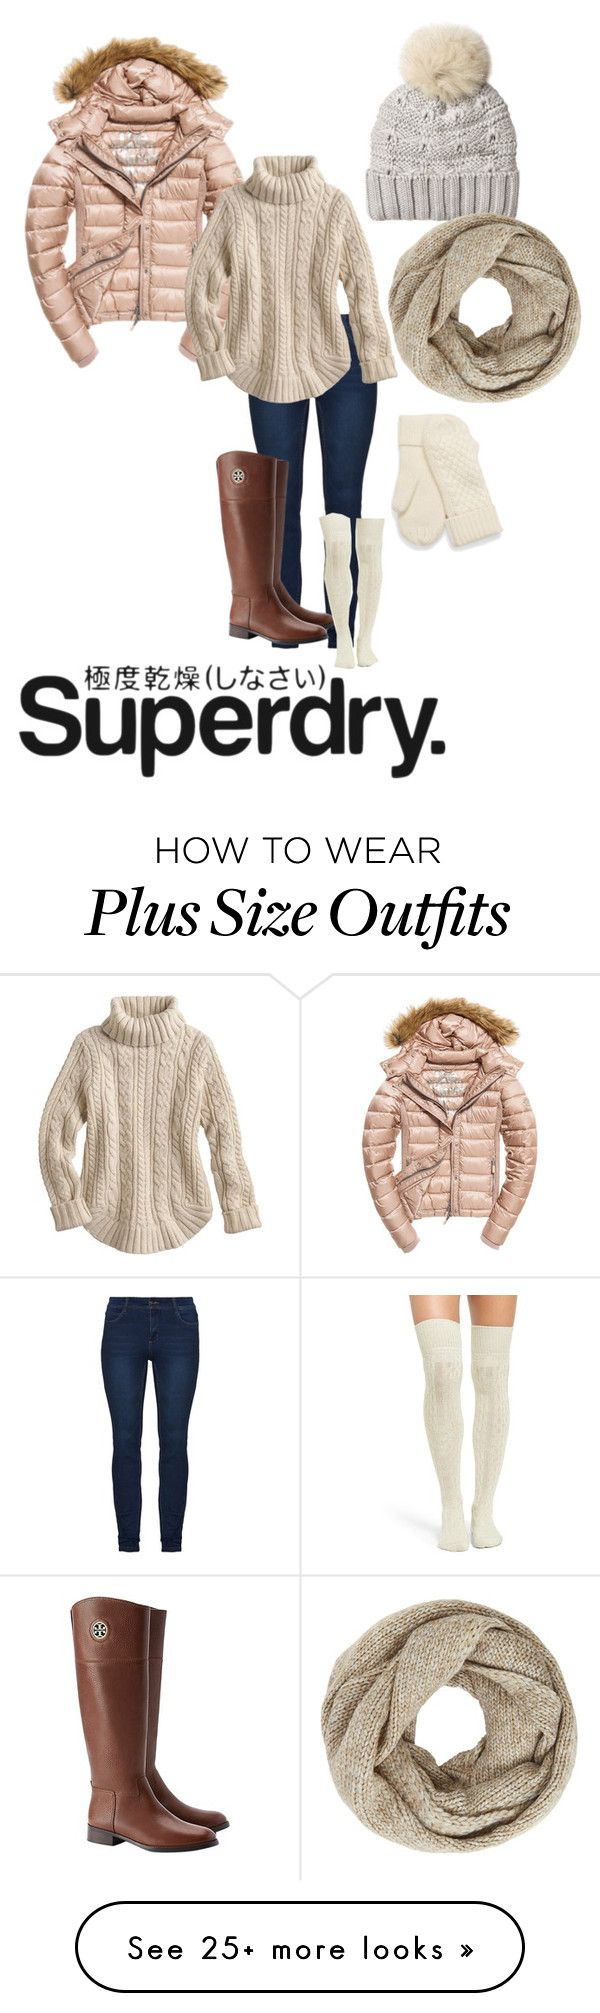 """The Cover Up – Jackets by Superdry: Contest Entry"" by katybaby17 on Polyvore featuring Fuji, Woolrich, John Lewis, Tory Burch, UGG, Superdry and Winter"